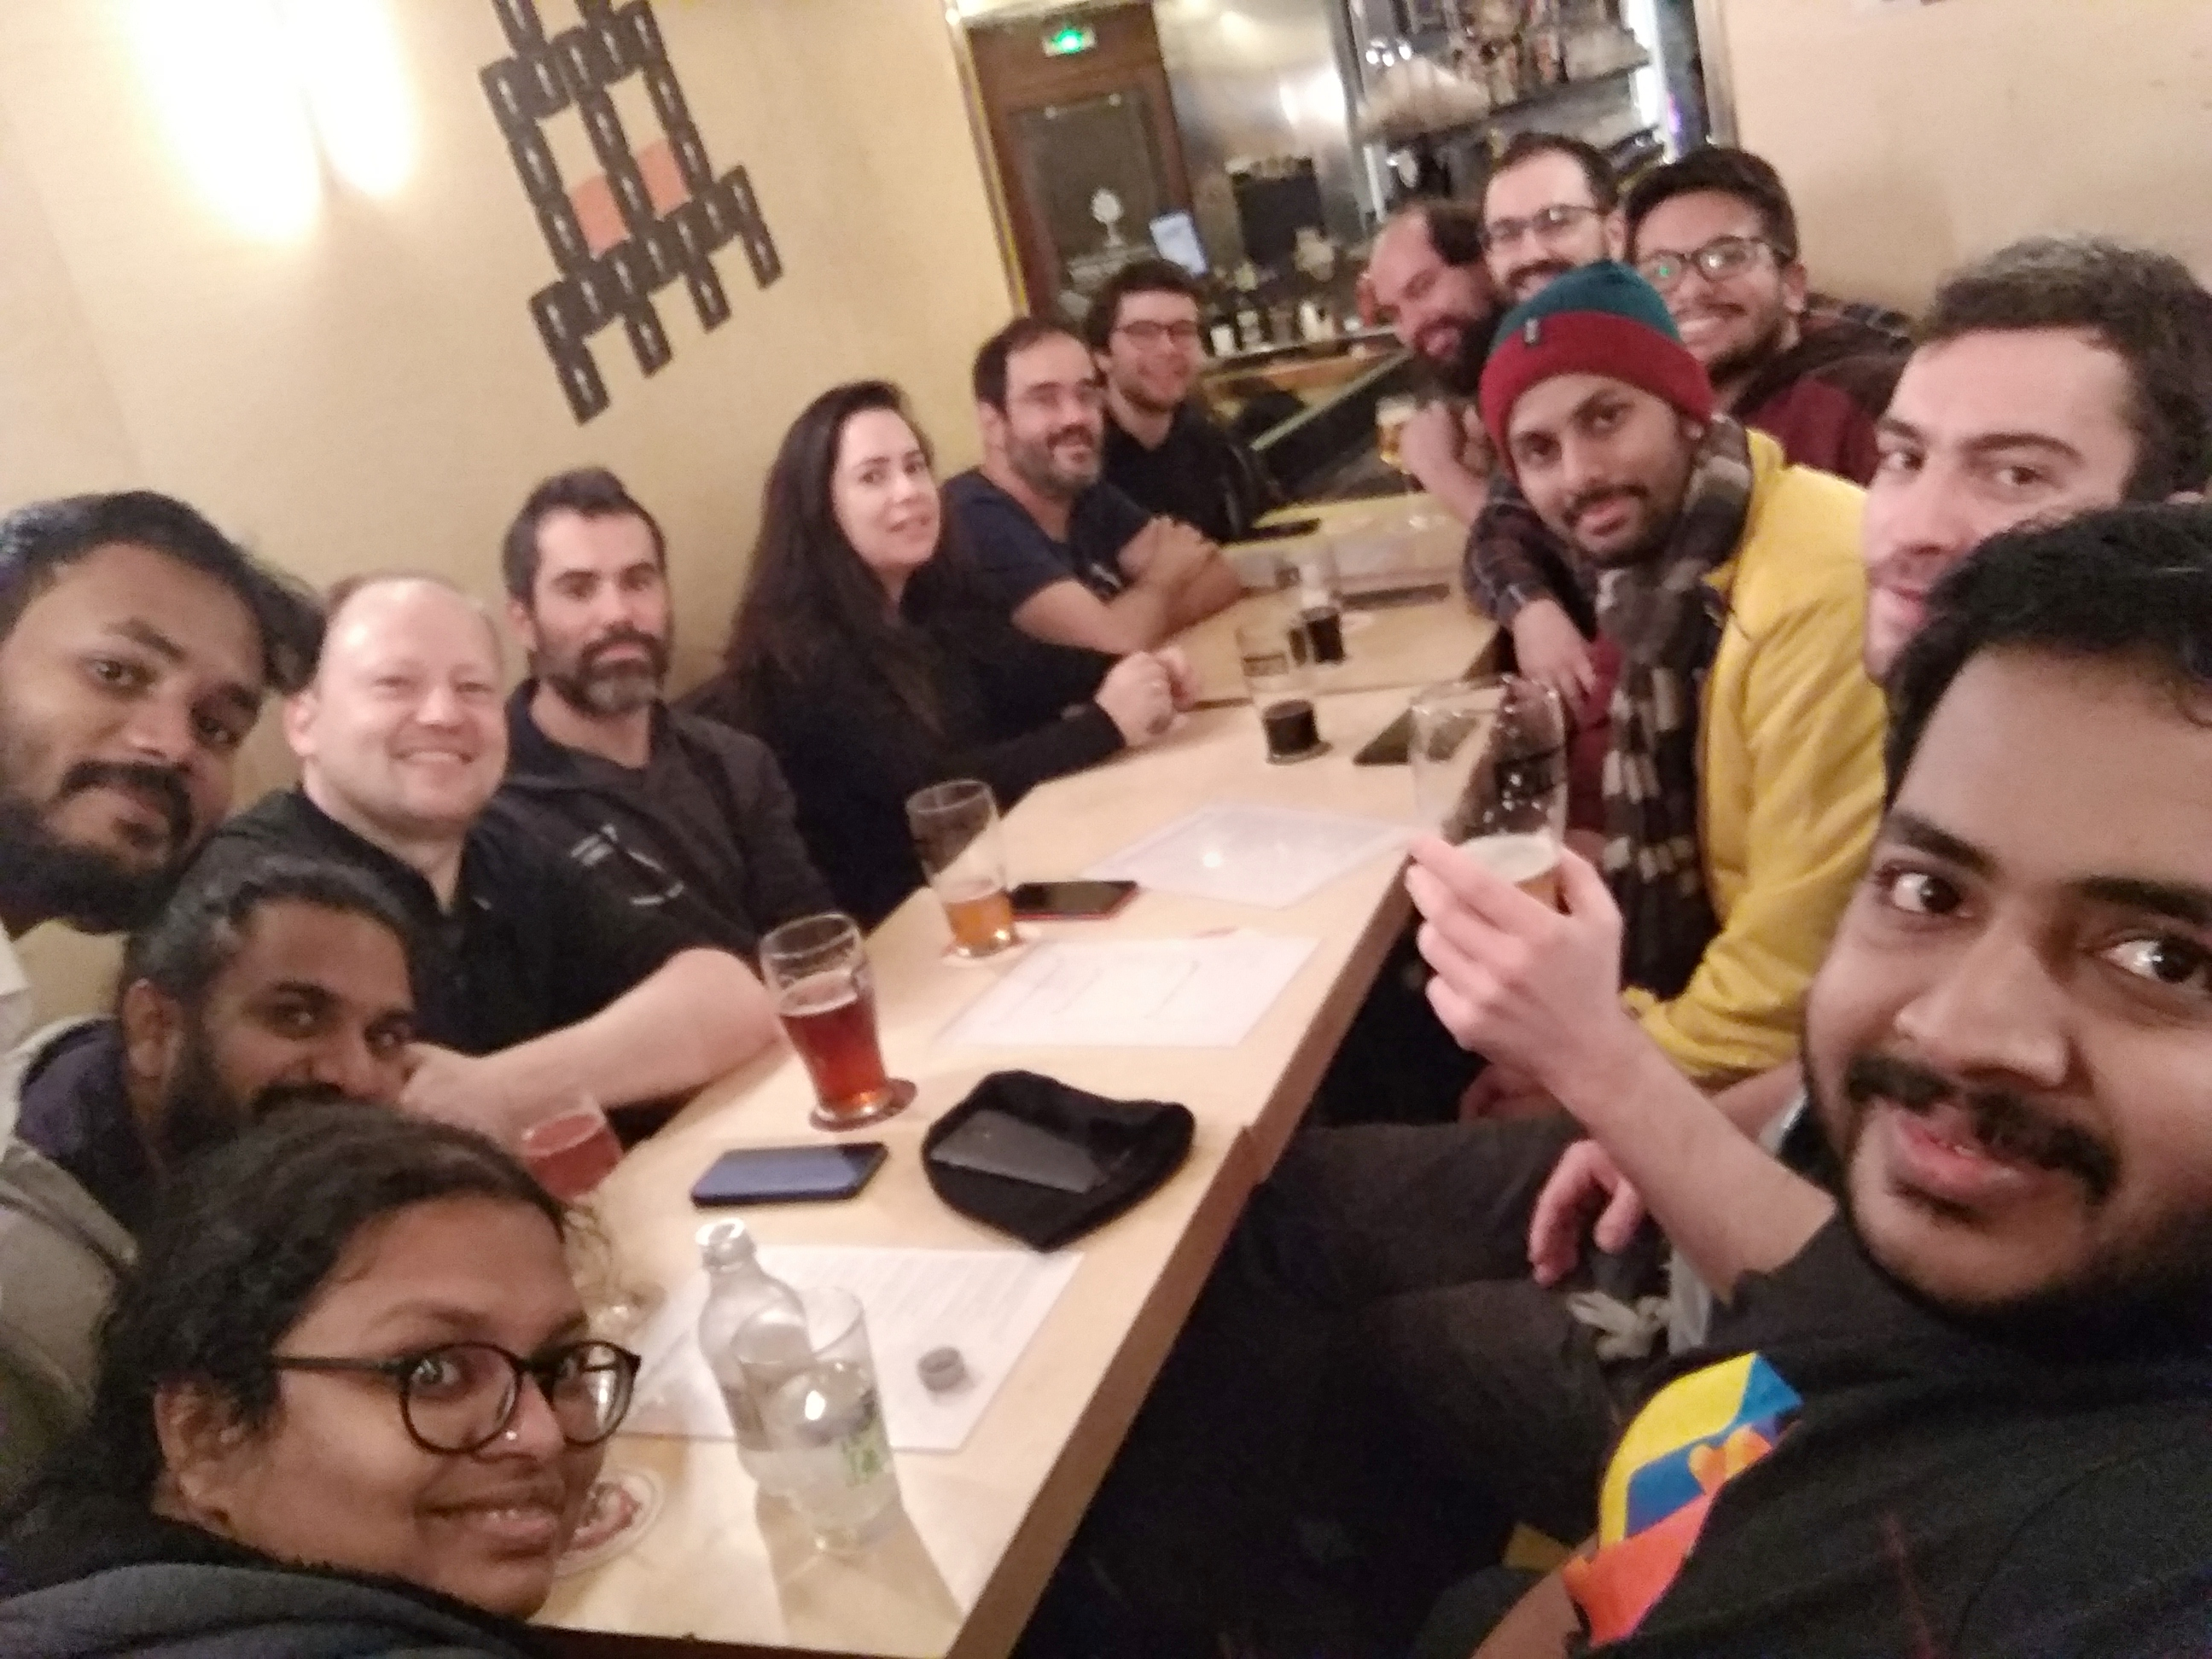 Group photo of the Ruby Team in Brewbarry Bar, Paris